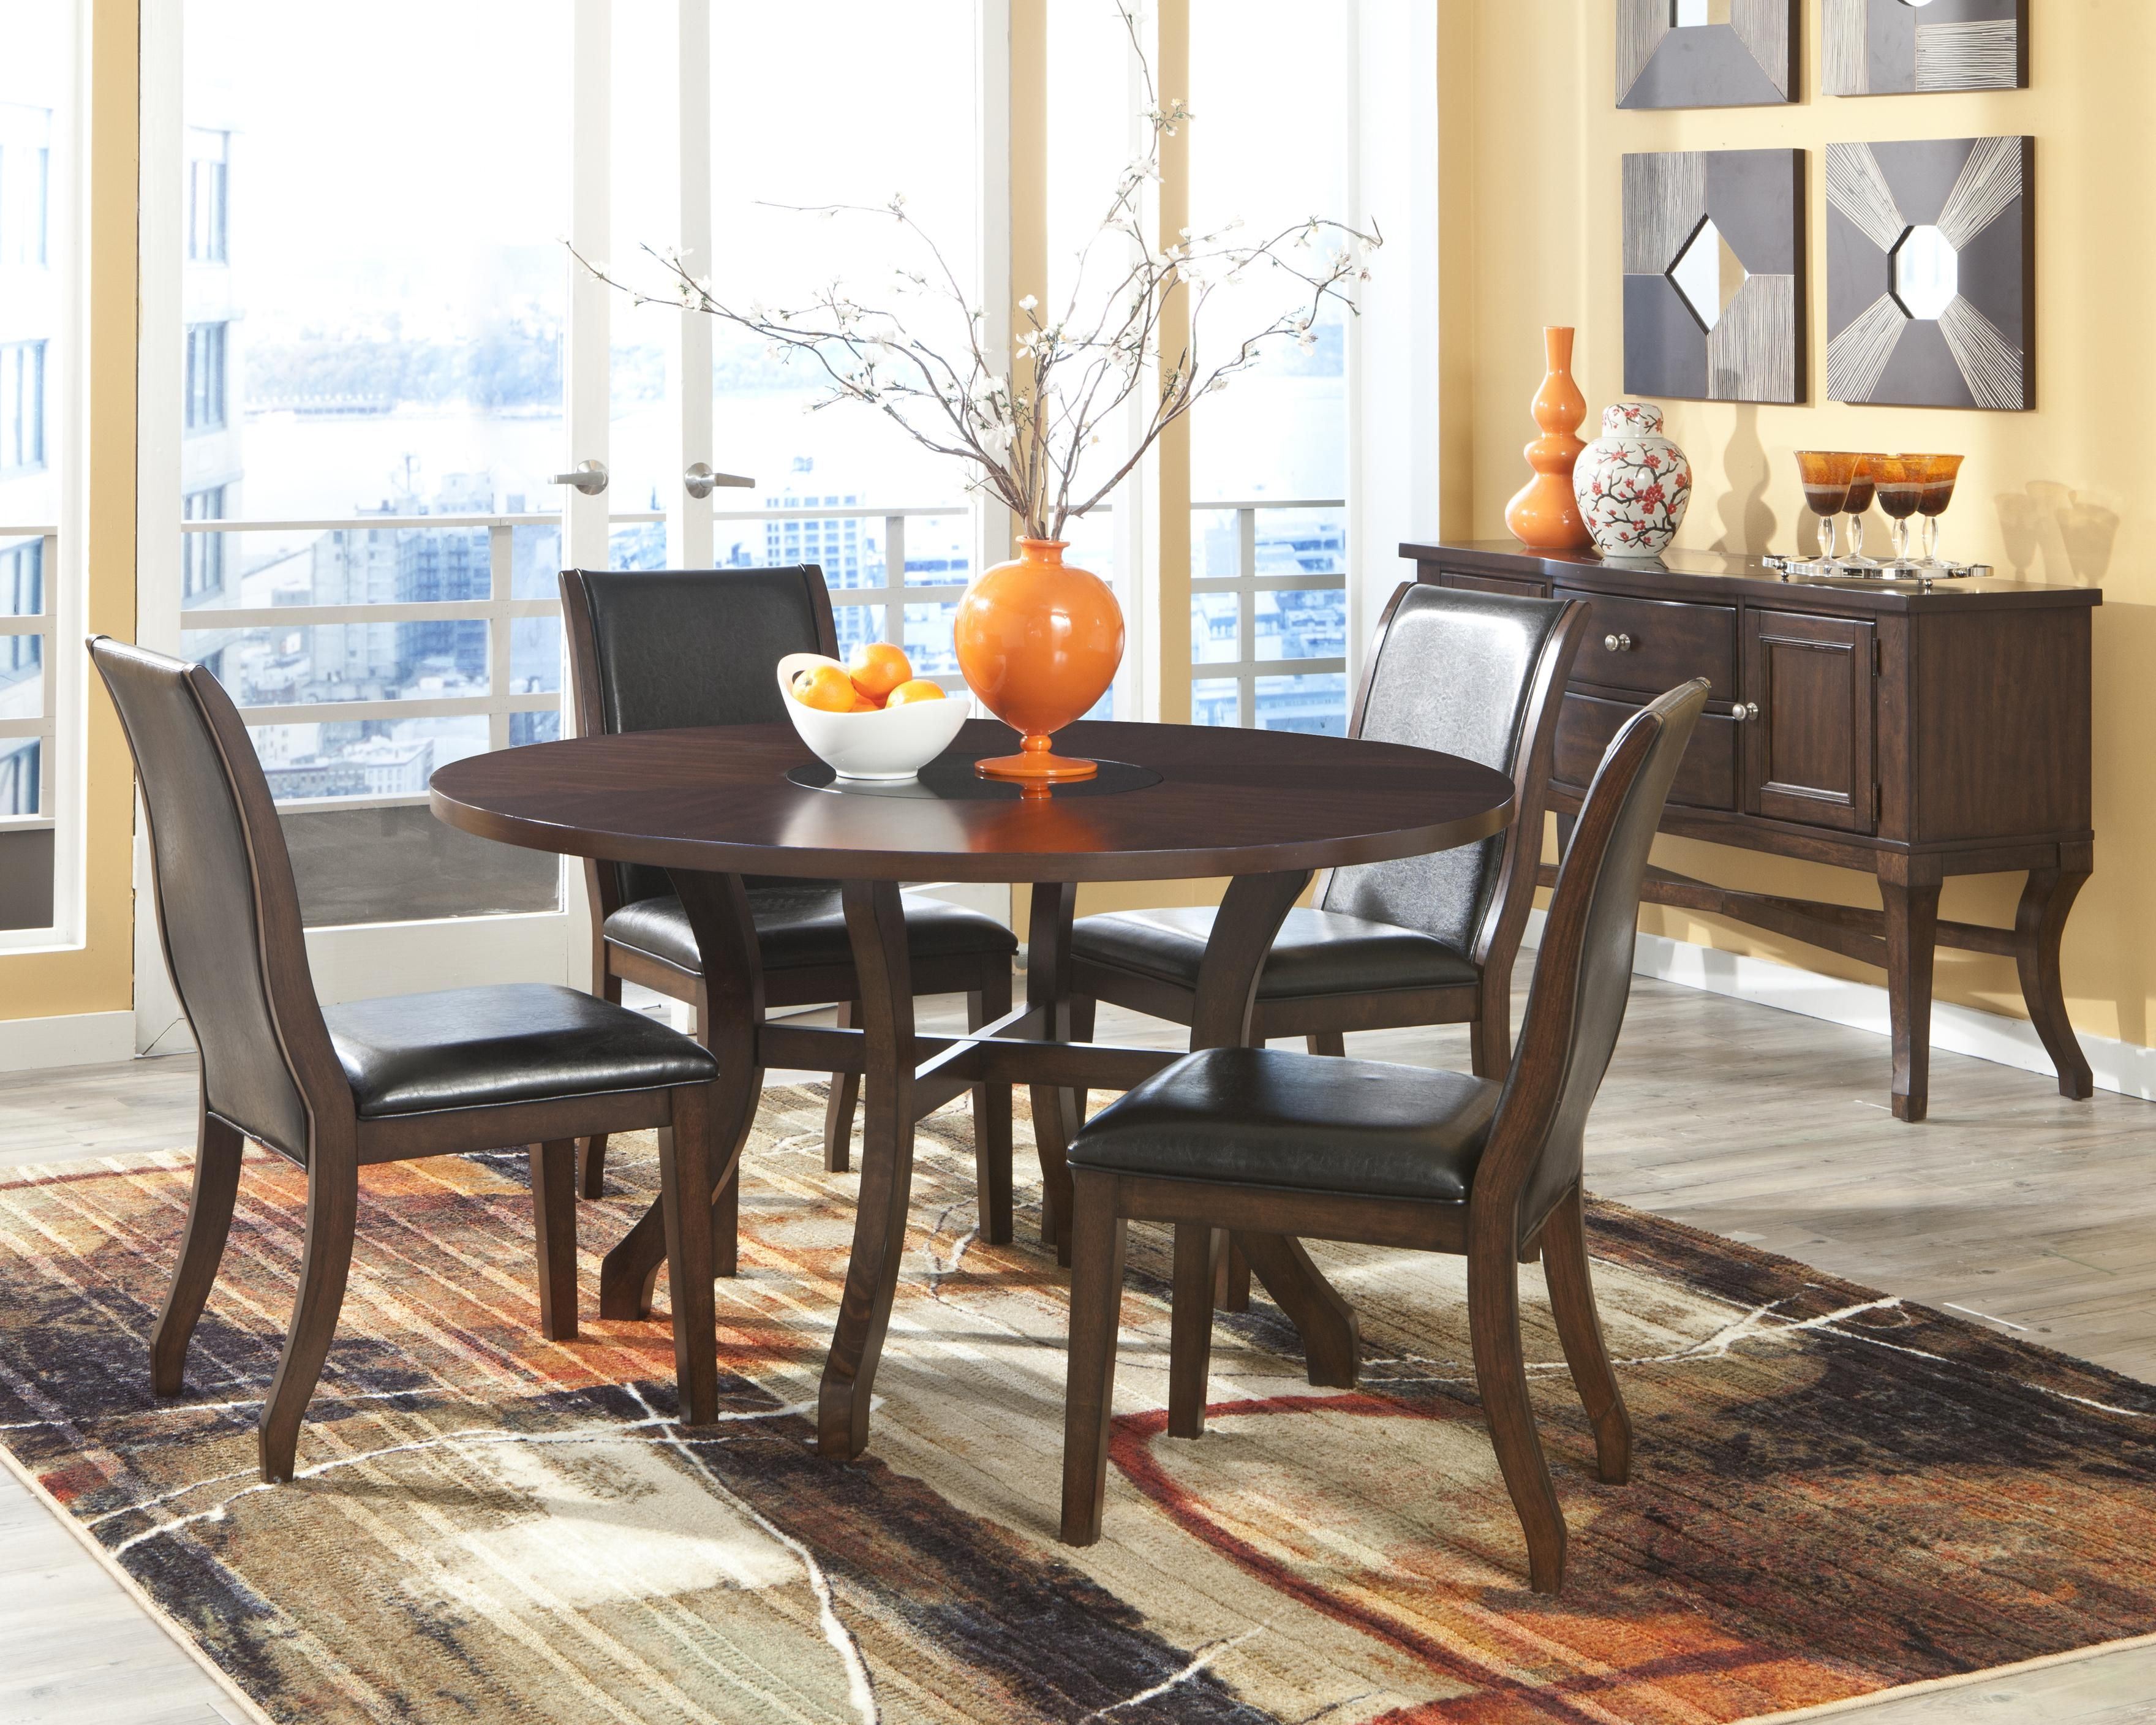 Calais Casual Dining Room Groupkalan Furniture  House Cool Casual Dining Room Tables Inspiration